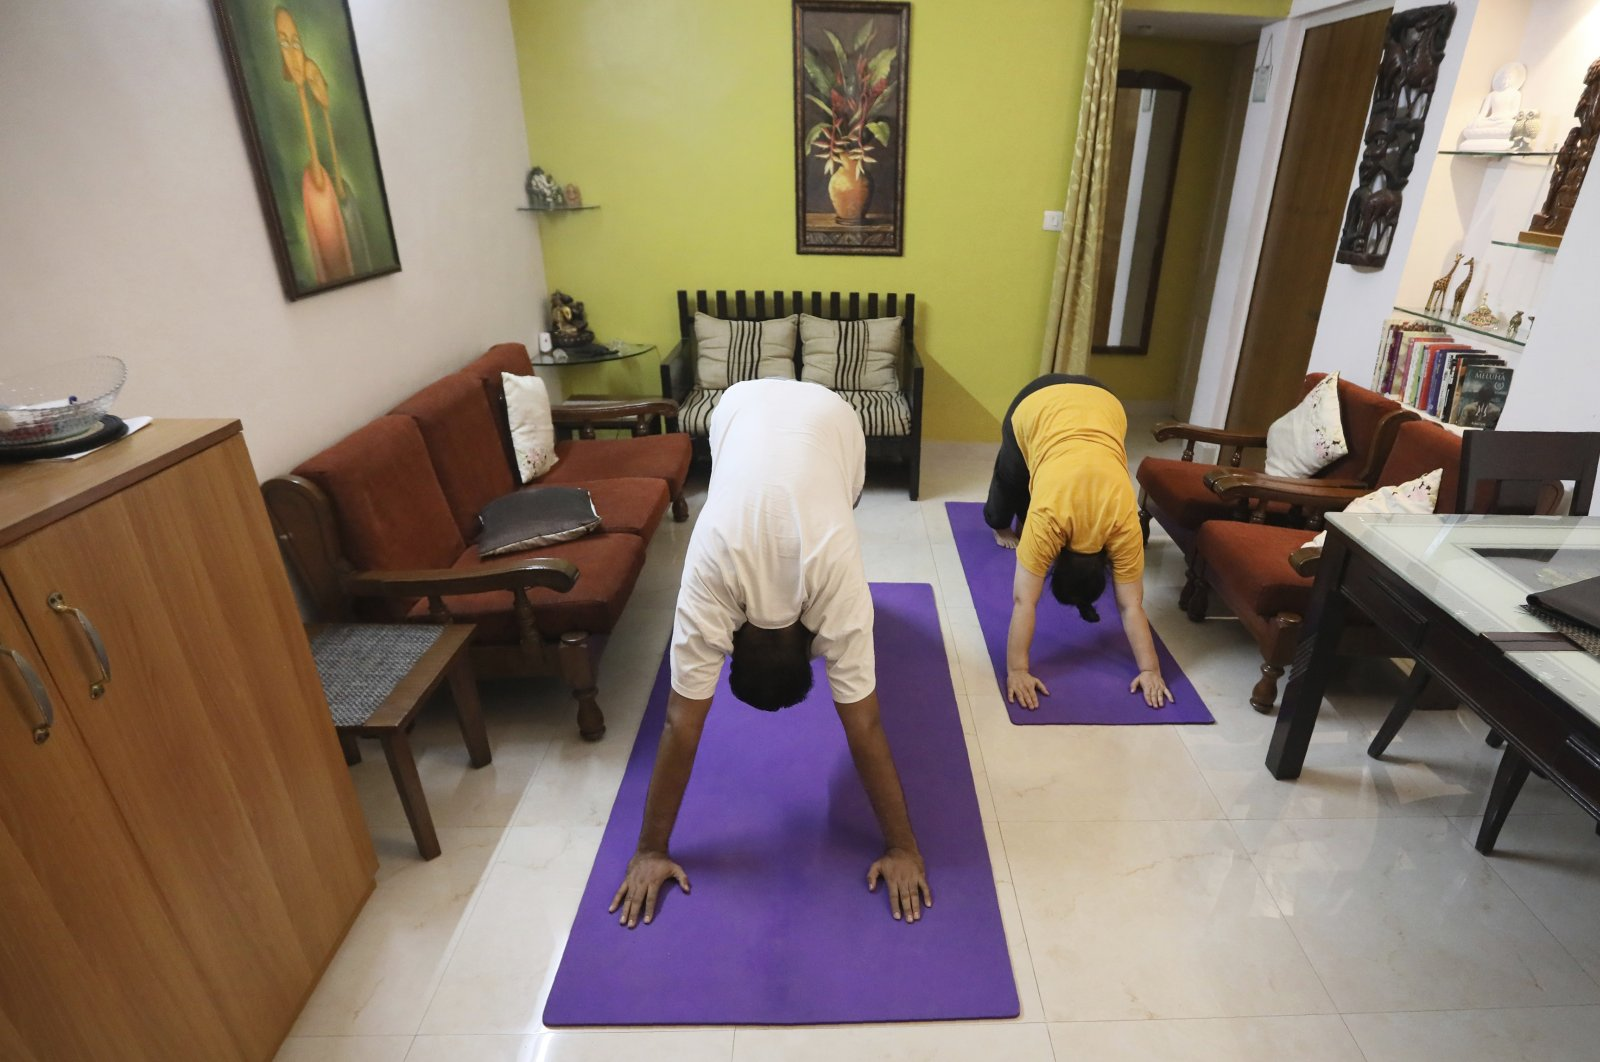 A couple practices yoga in their home to mark International Yoga Day through an online class in New Delhi, India, June 21, 2020. (AP Photo)